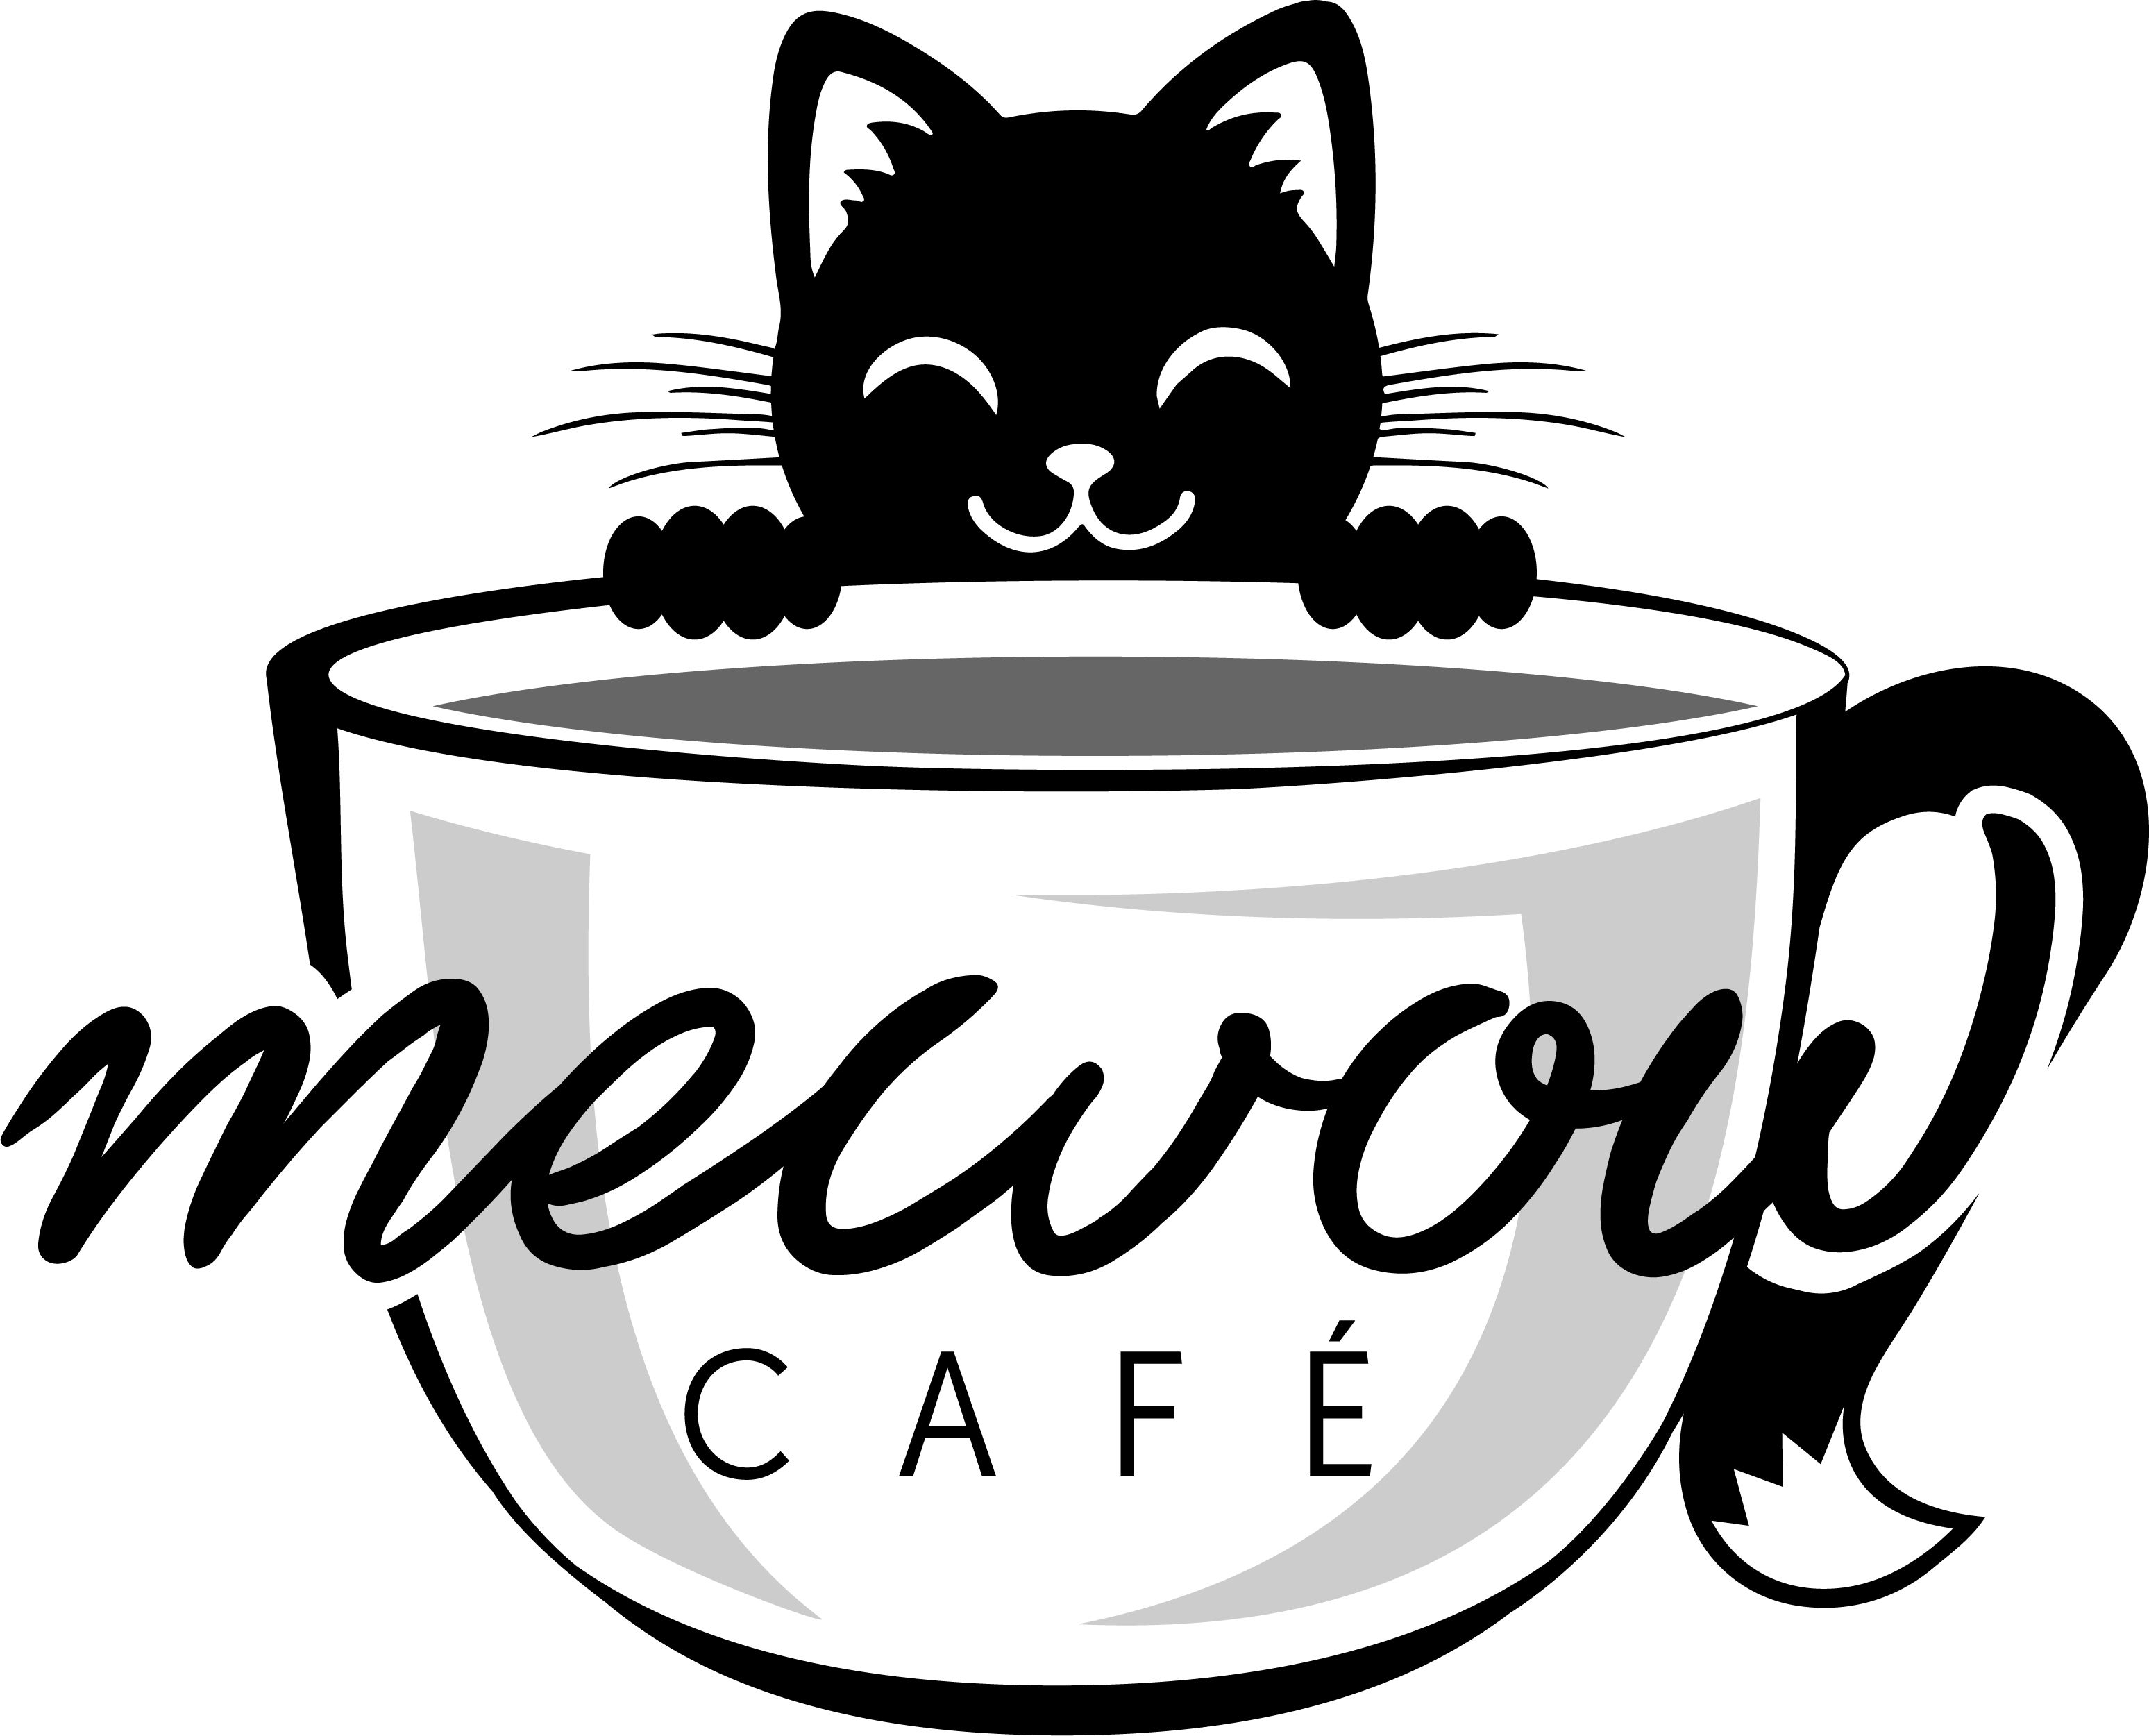 Enjoy Coffee Meandering Cats In Our Cafe Mewow Cat Cafe Coming To Bucks County Soon Catcafe Buckscounty Lovecats Ca Cat Cafe Cat Logo Design Cat Coffee